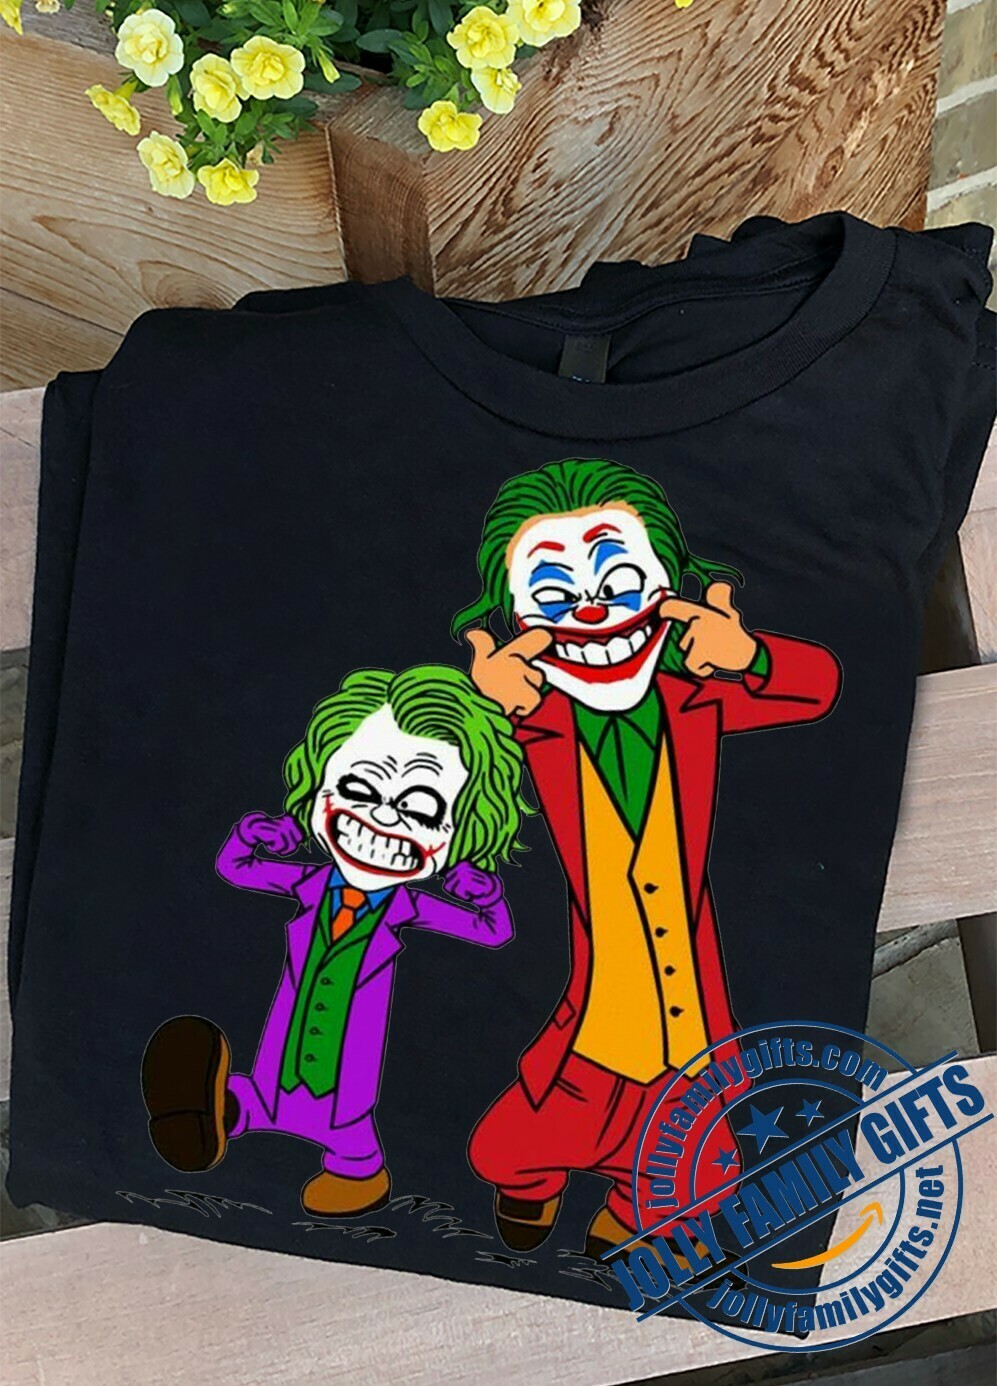 Double Joker Calvin and Hobbes Put On A Happy Face Joaquin Phoenix Heath Ledger Here Comes Your Favorite Villain Halloween Movie T-shirt Unisex T-Shirt Hoodie Sweatshirt Sweater Plus Size for Ladies